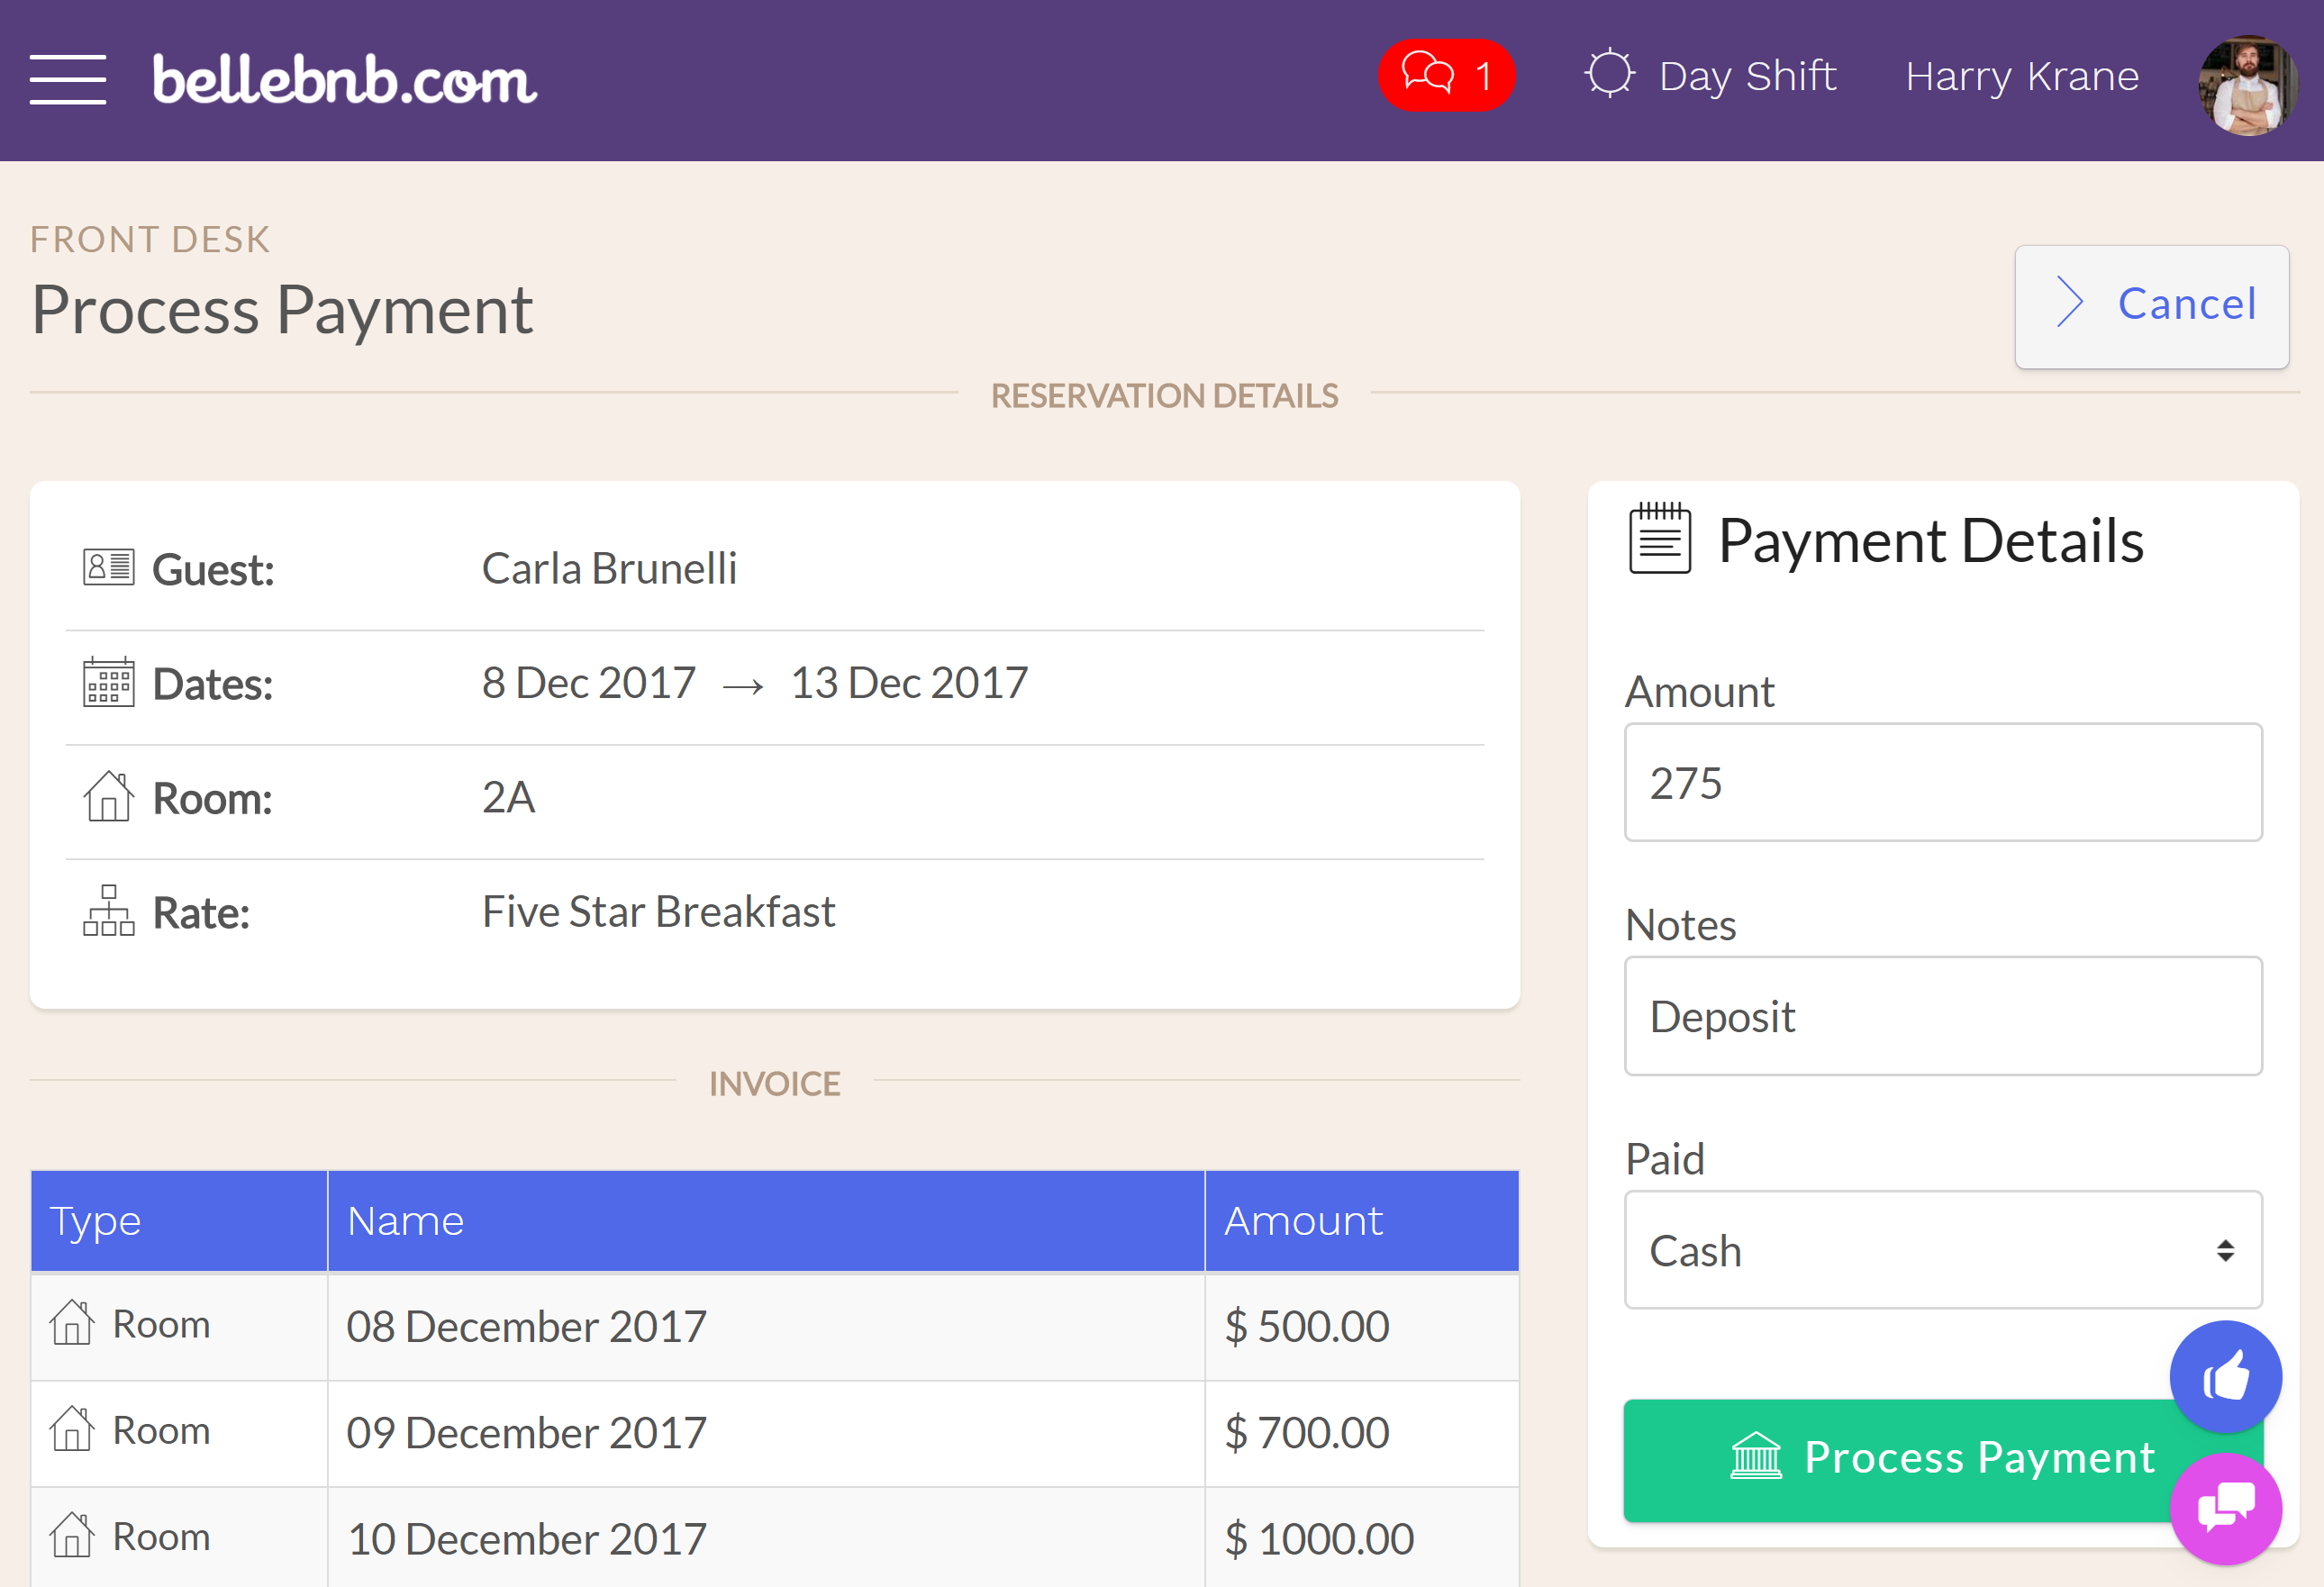 Before you check in this guest, let's process a payment. Click 'Actions > Process a Payment,' then enter an amount for a deposit (no more than the total) and click to process the payment.